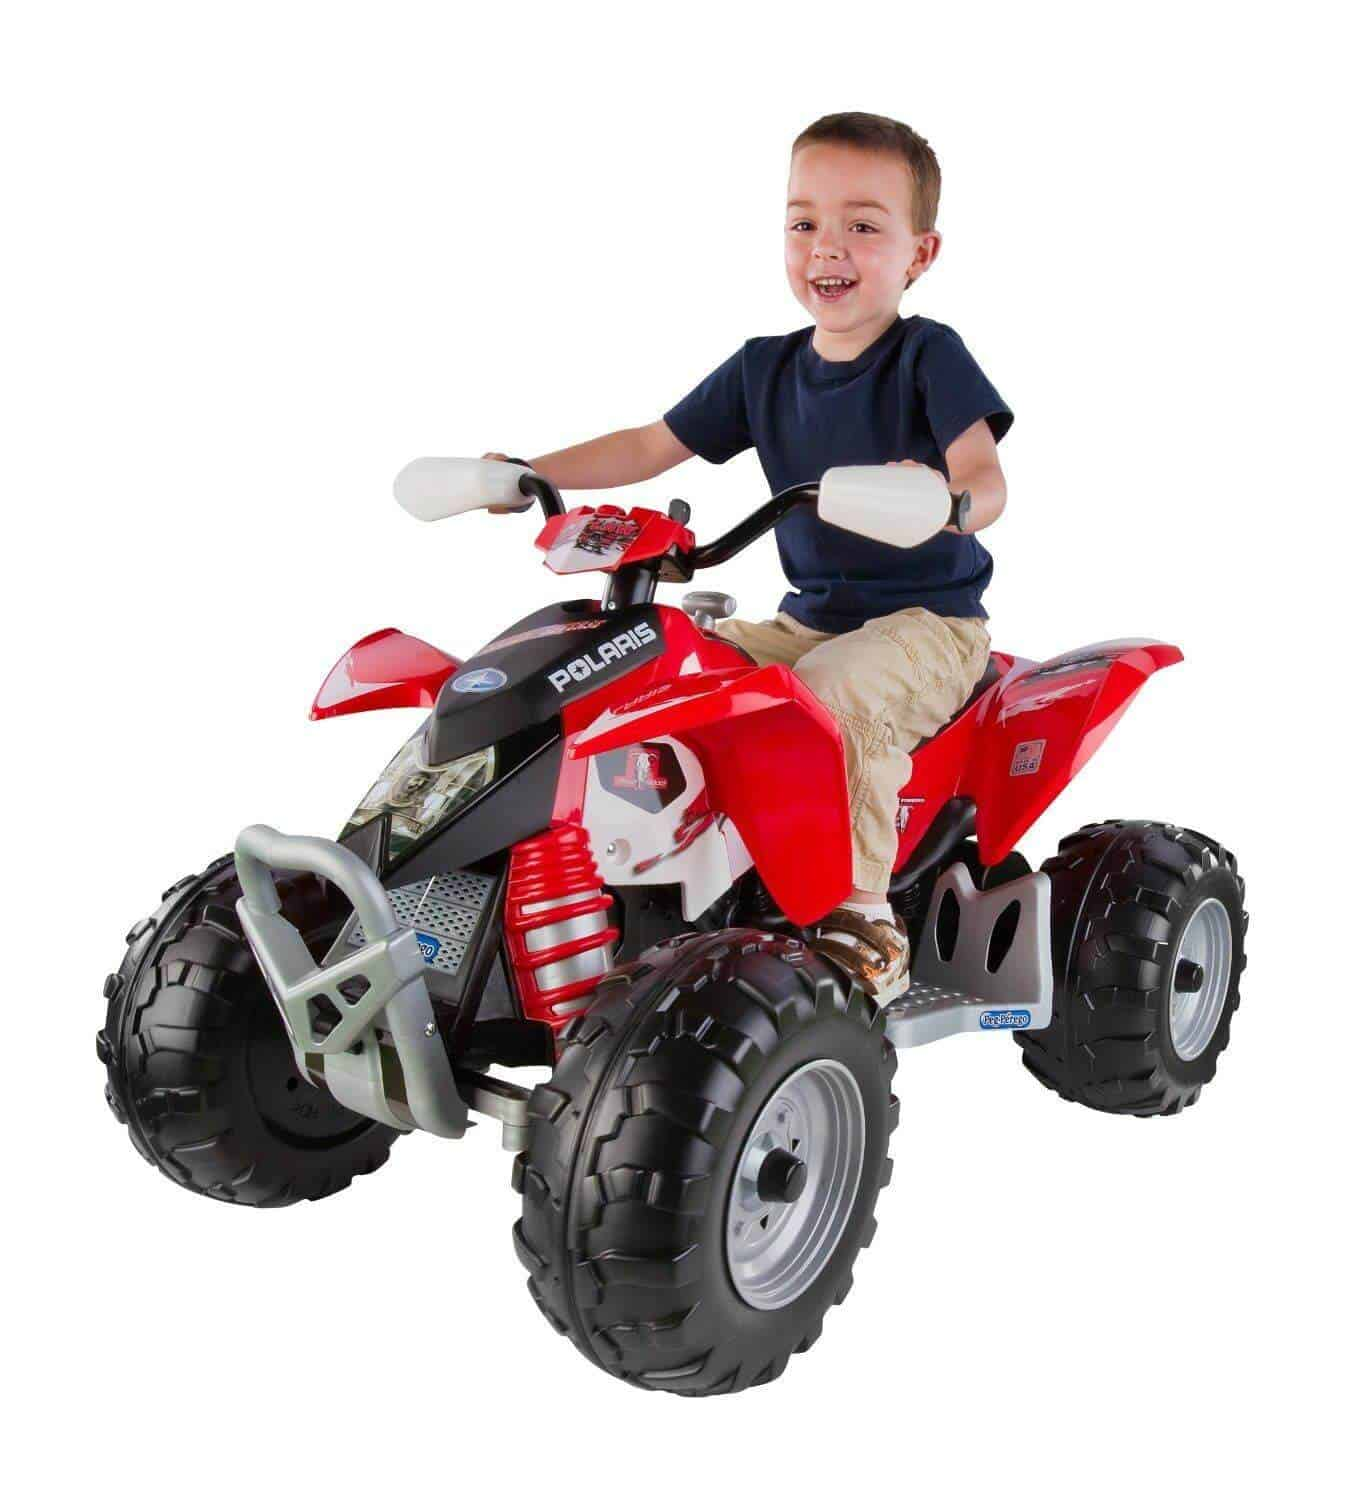 Peg Perego Atvs For Kids Top Models Review